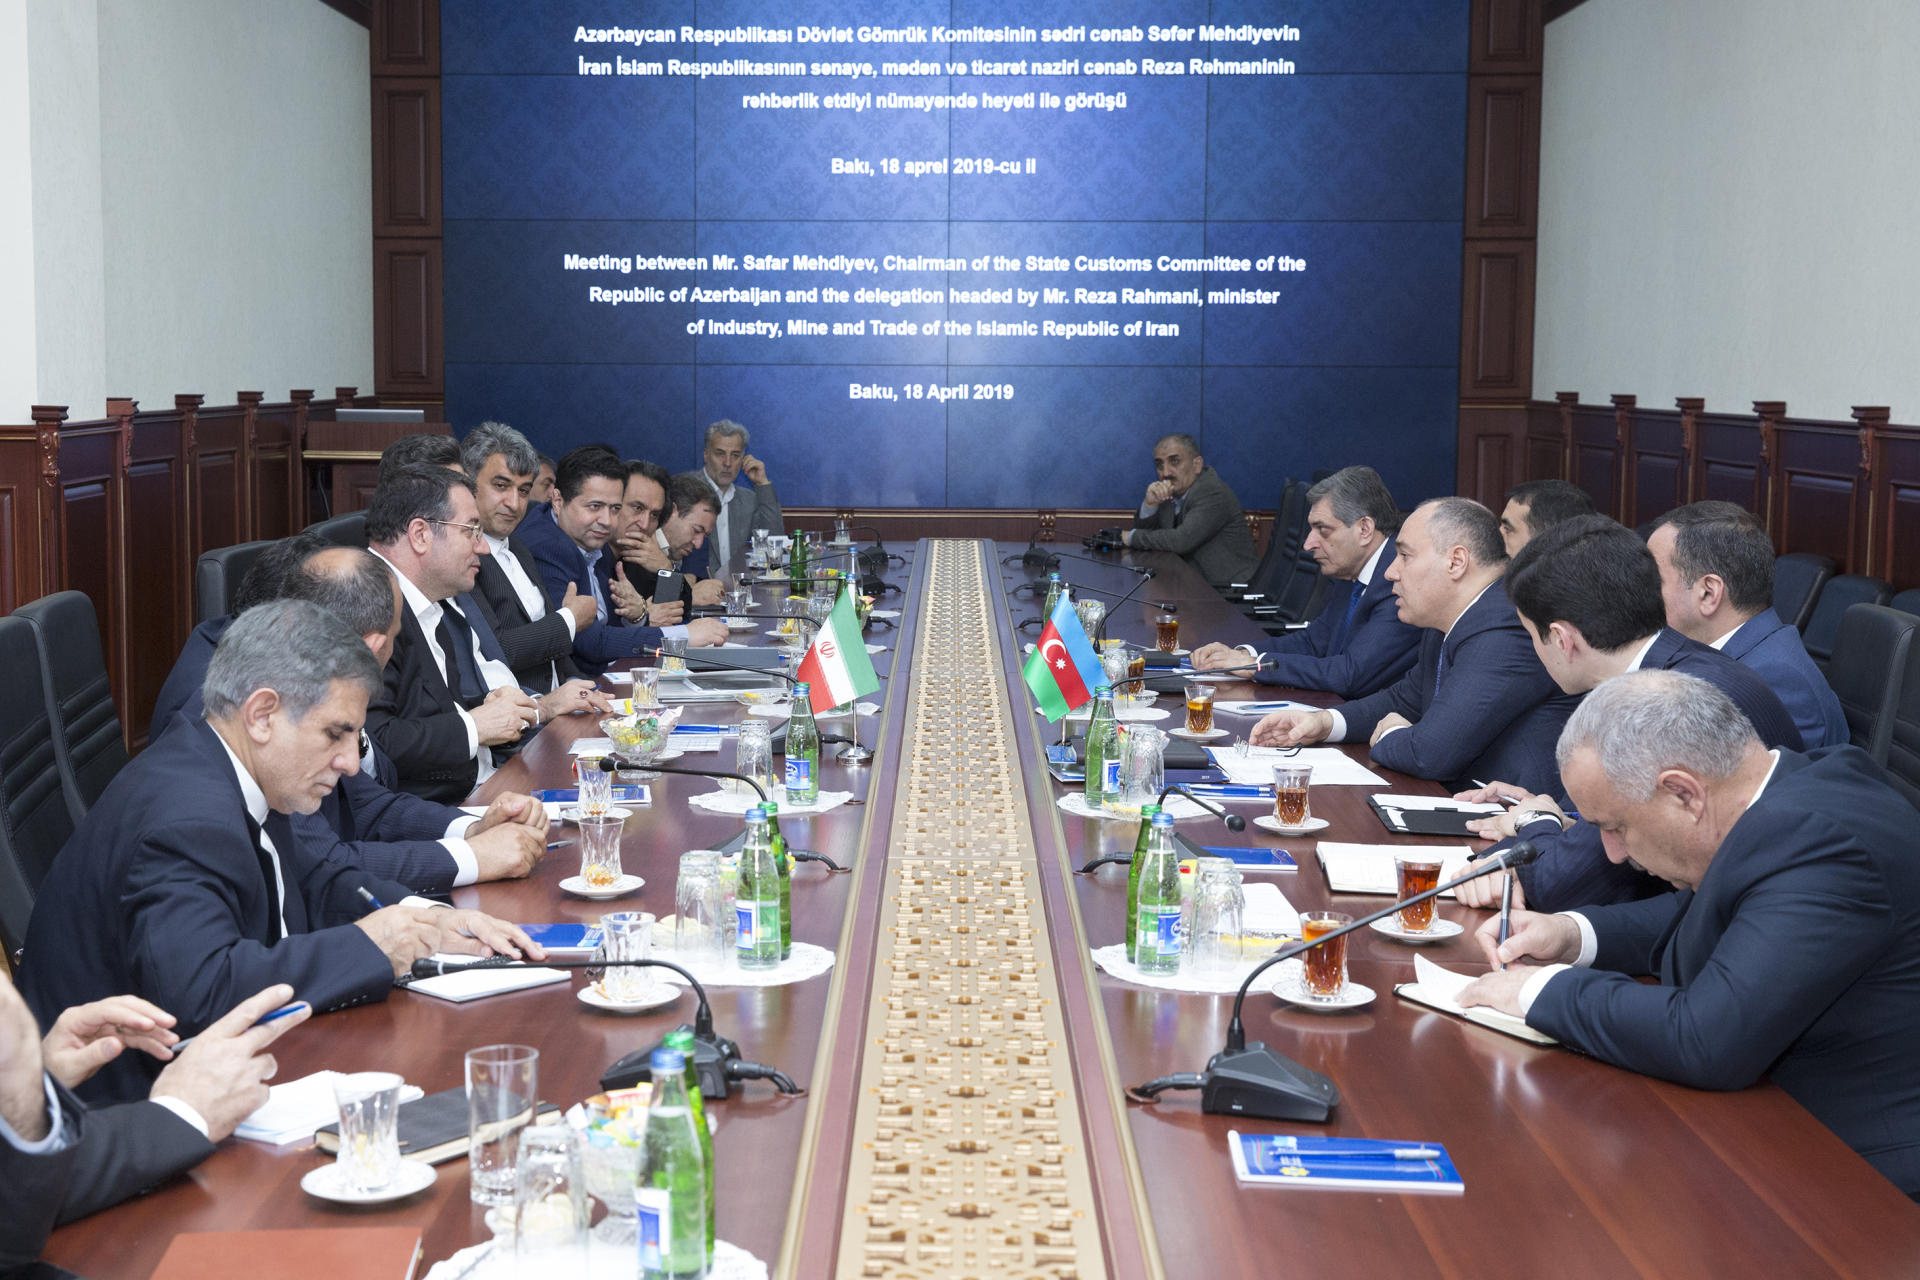 Azerbaijan's State Customs Committee meets with Iranian delegation